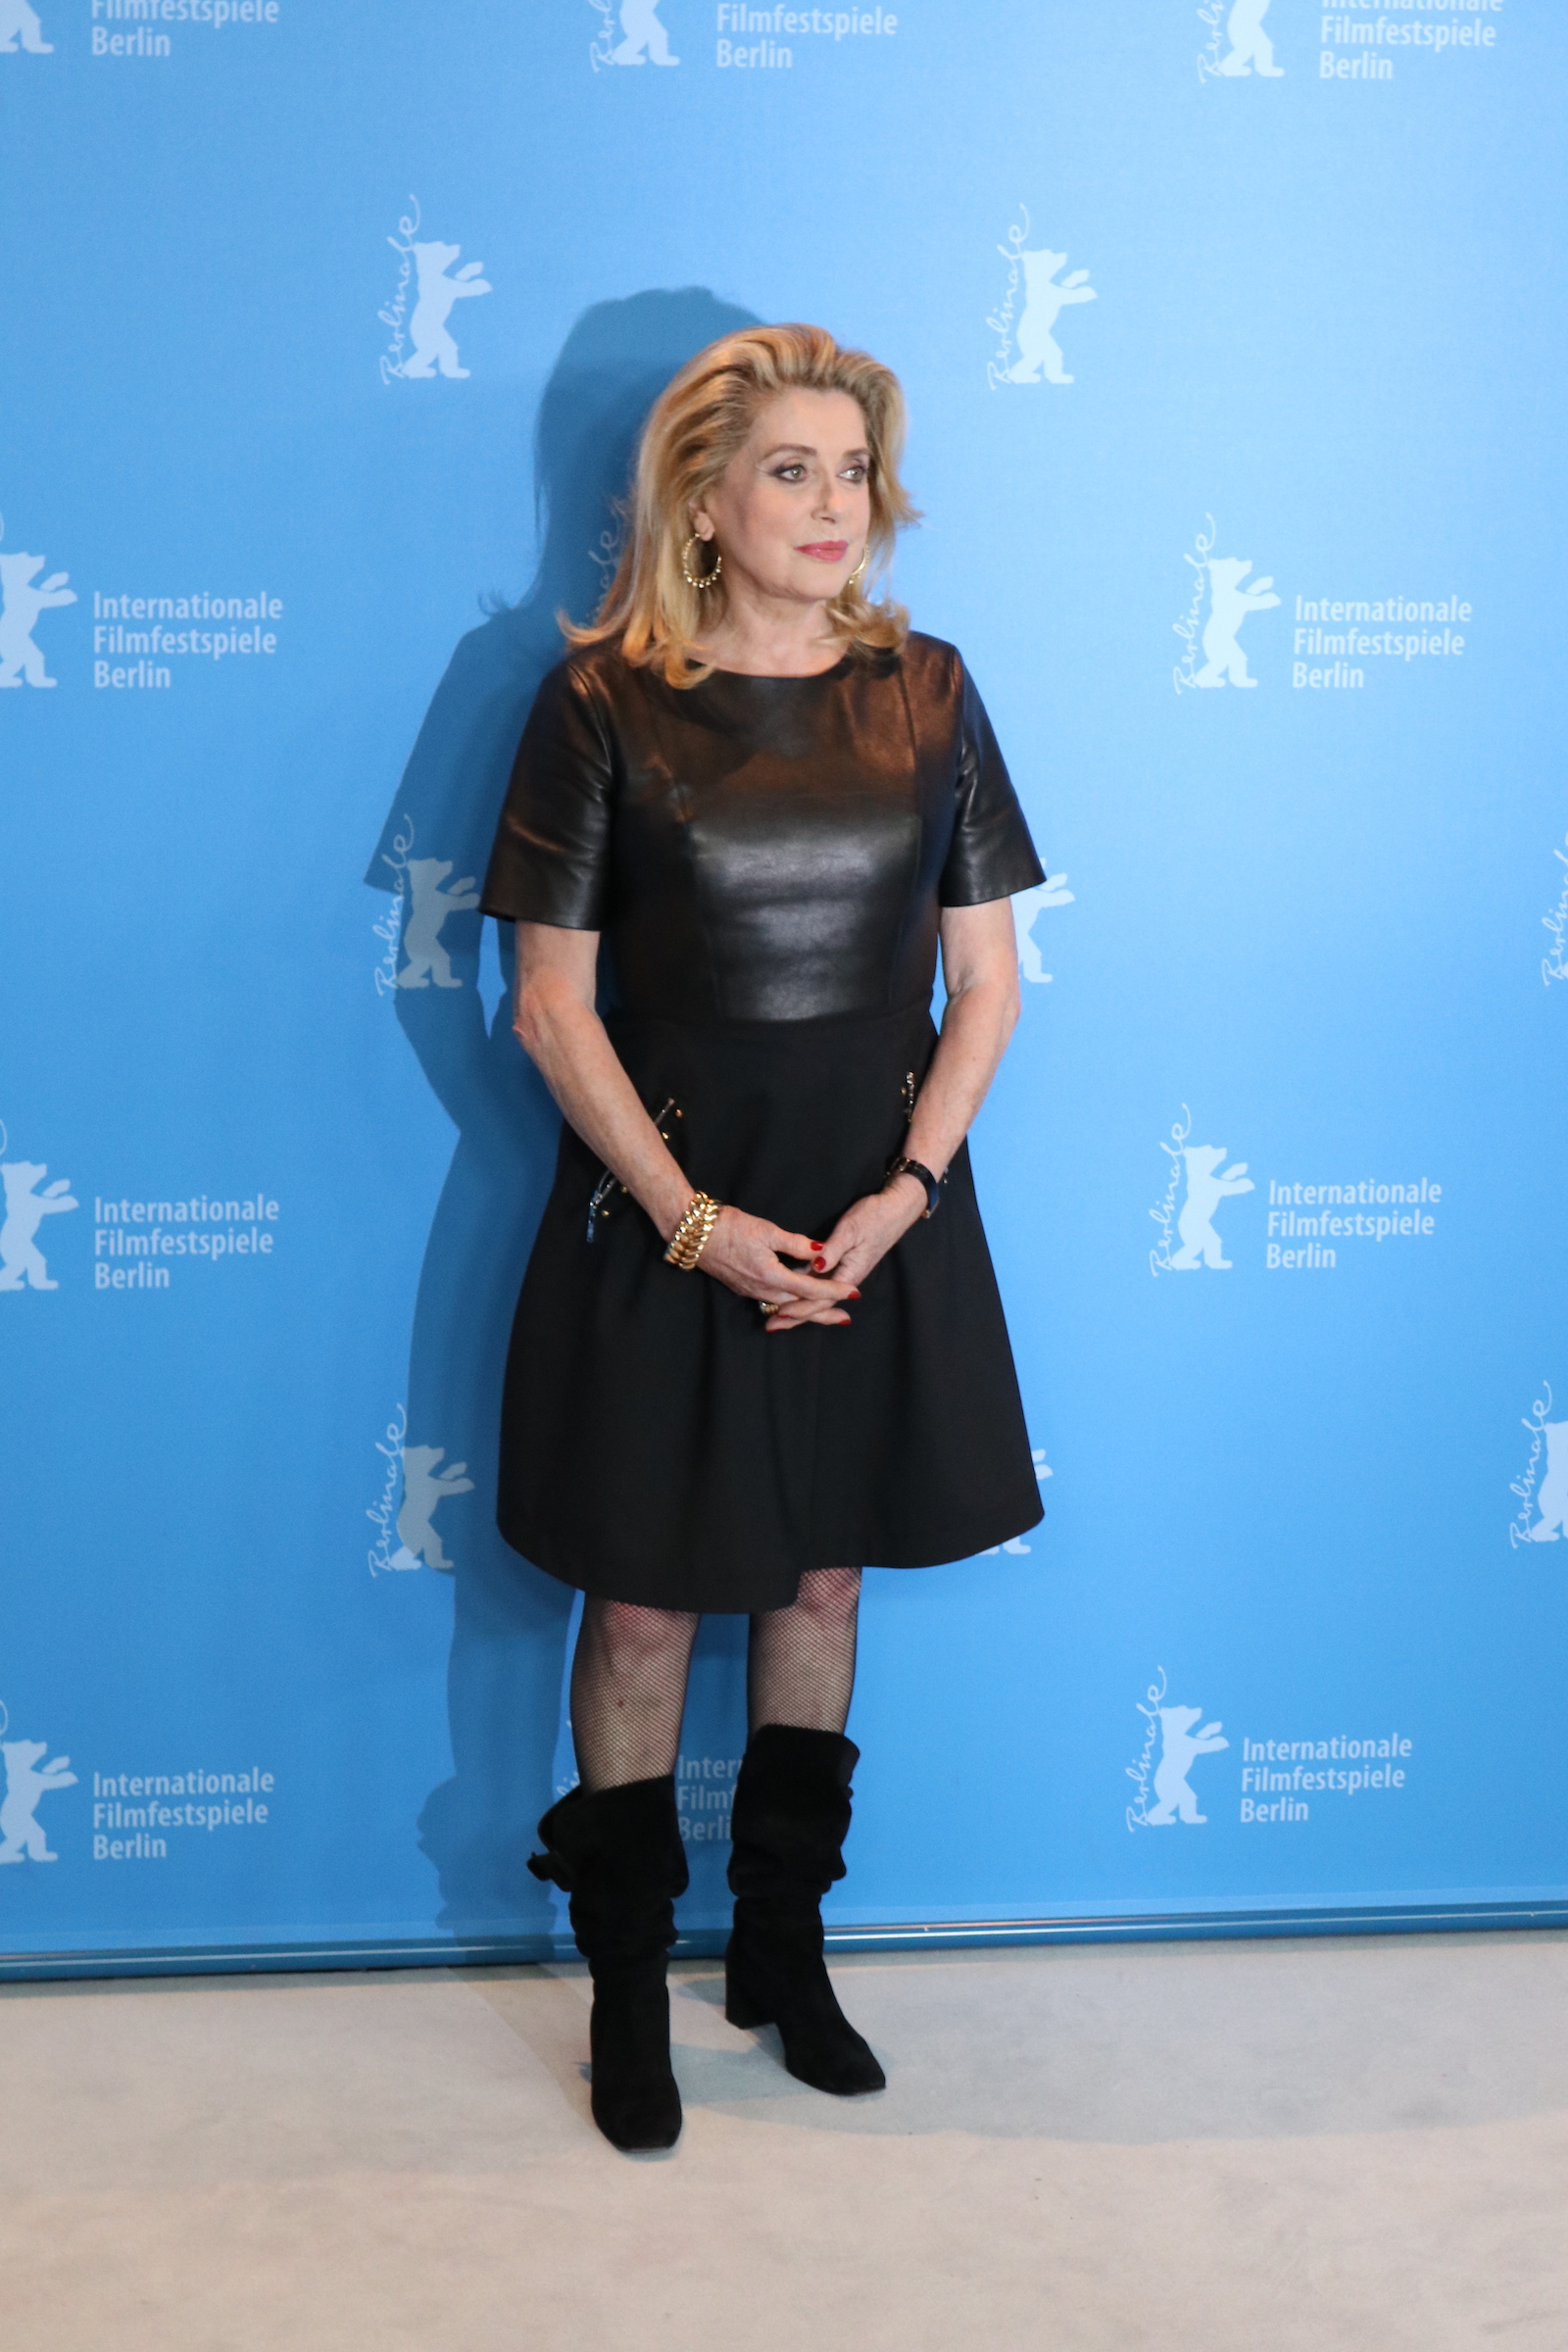 Berlino 2017:uno scatto di Catherine Deneuve al photocall di The Midwife